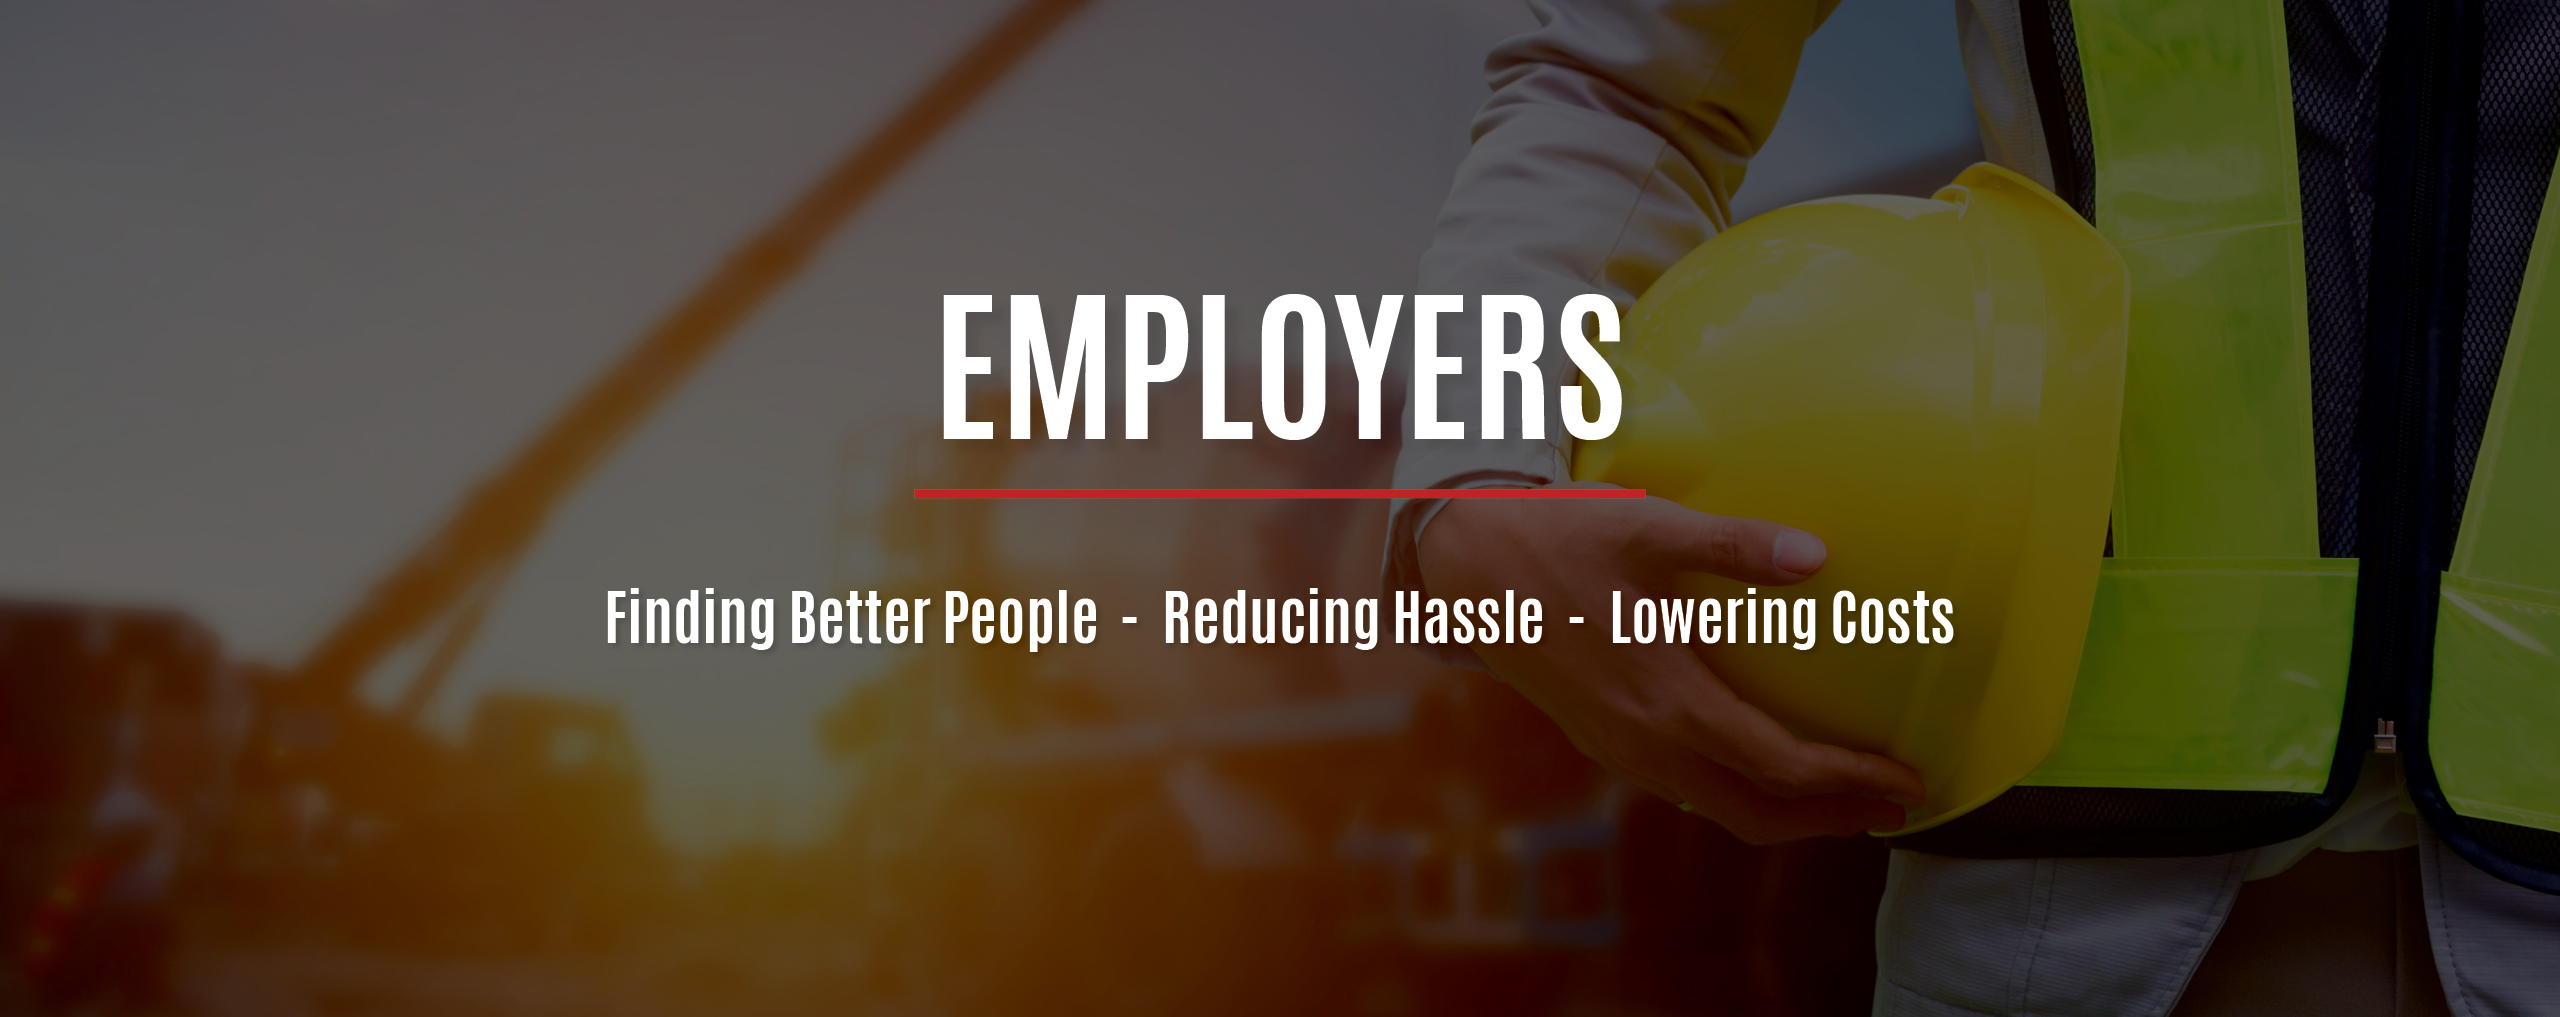 Employers page